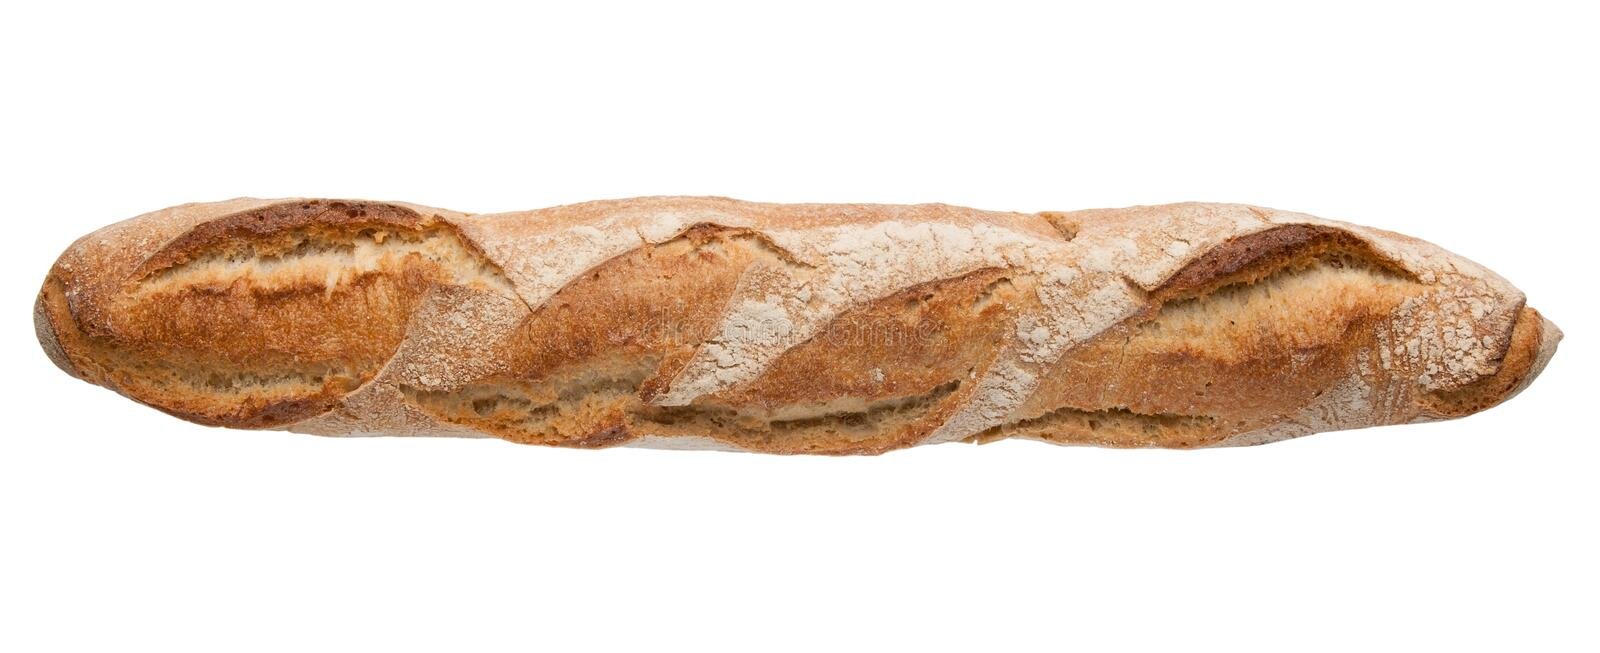 Baguette Long French Bread Royalty Free Stock Image